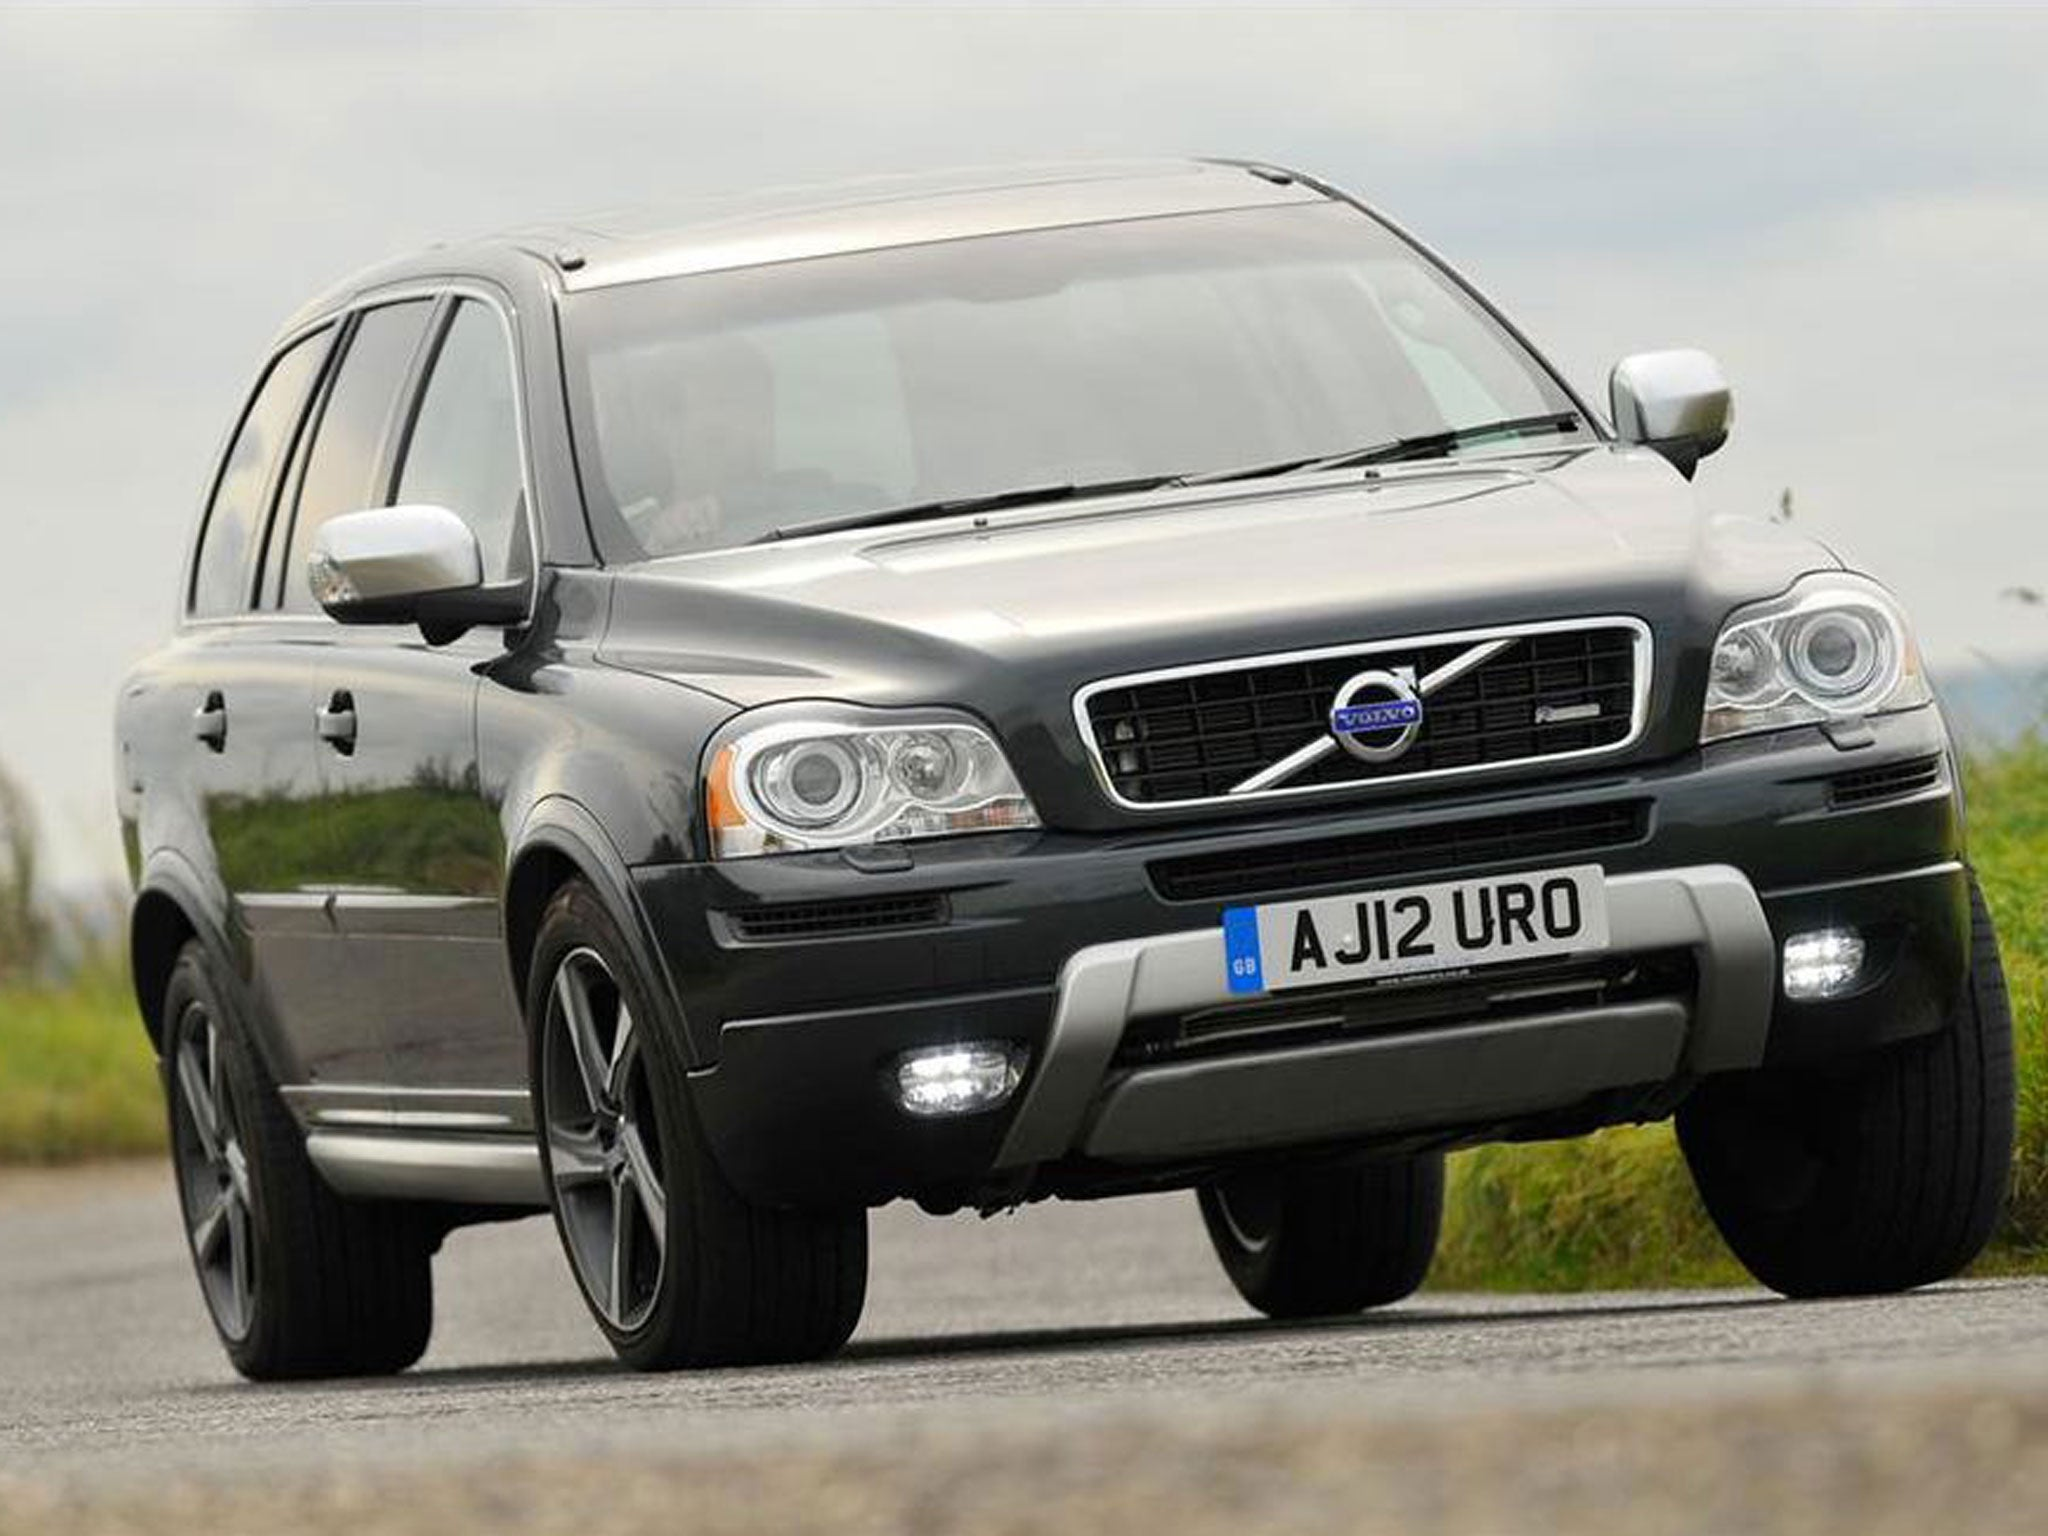 Top 10 used SUVs Our pick of the best second hand 4x4s